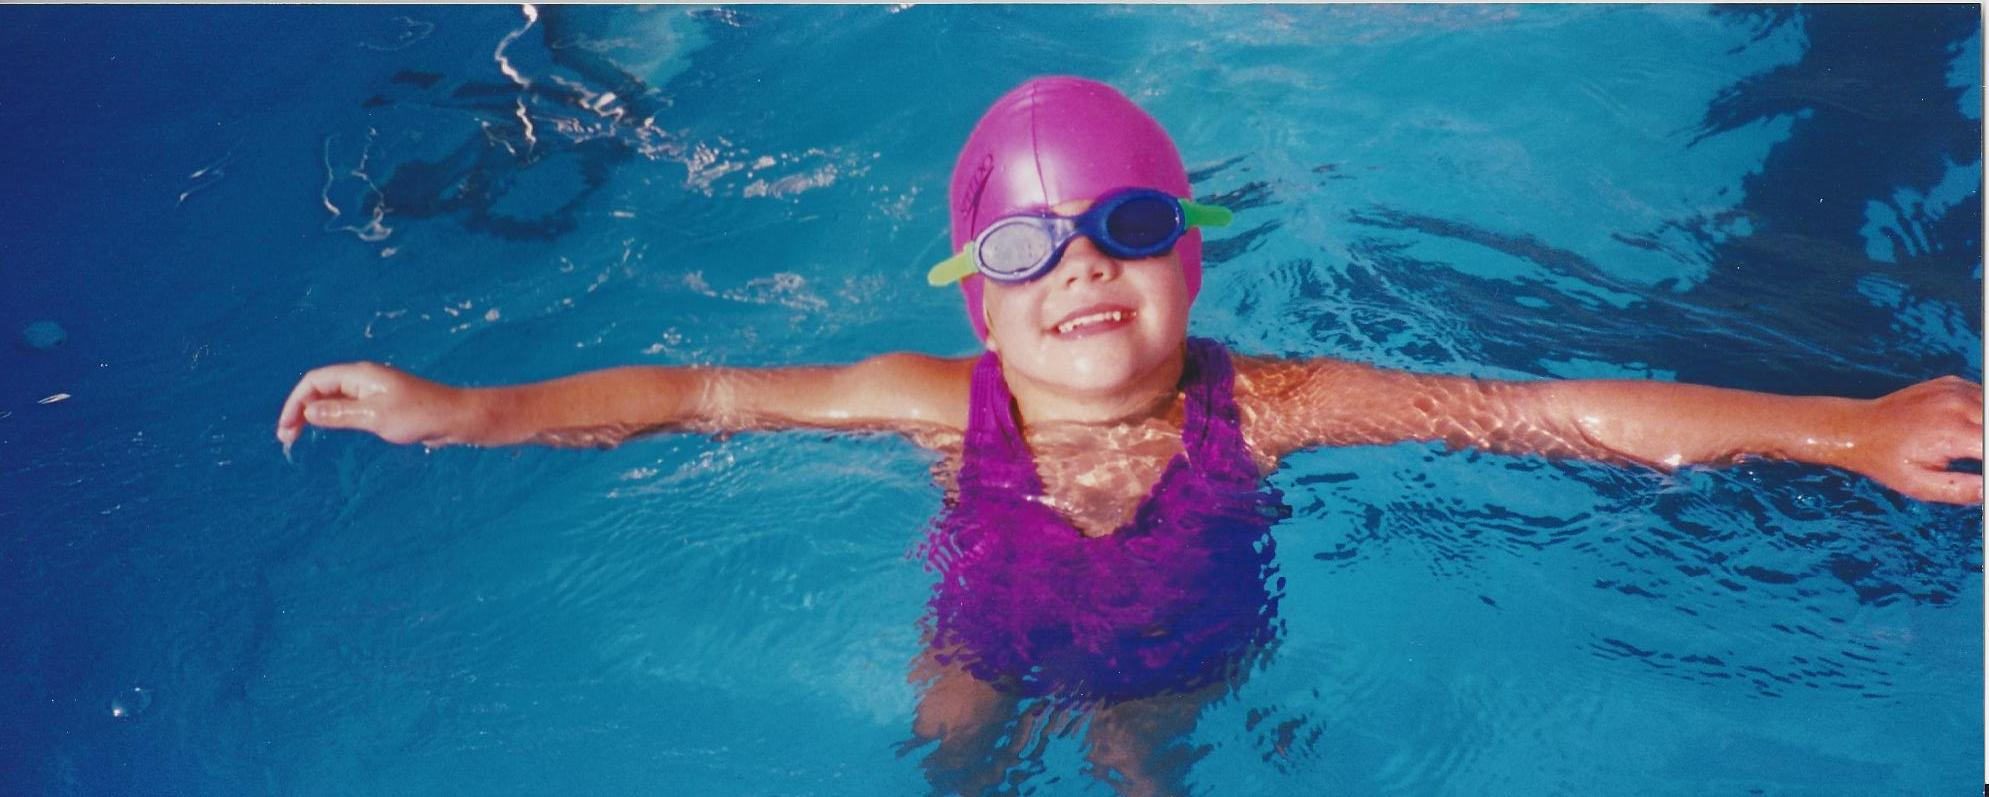 Wingert as a child swimmer.